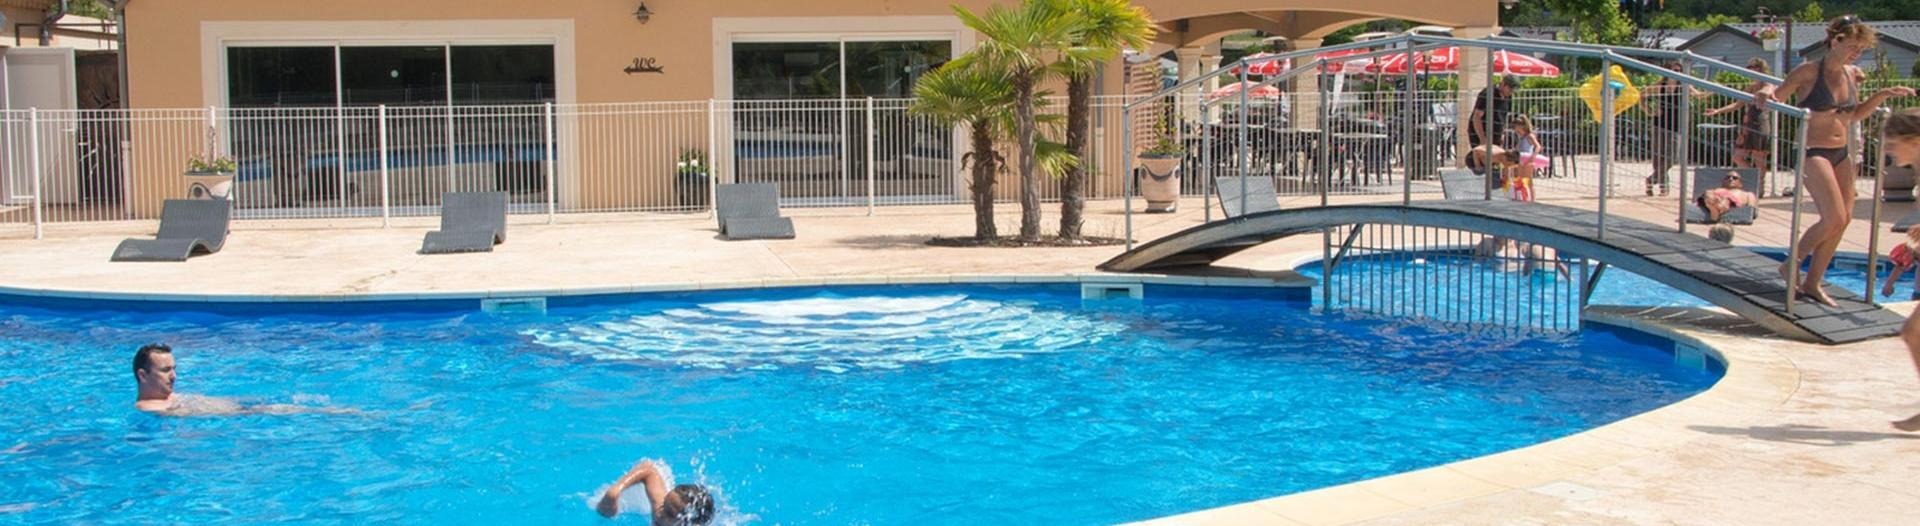 slider-camping-sous-bois-st-maurice-d-ibie-loisirs-piscine-harricot